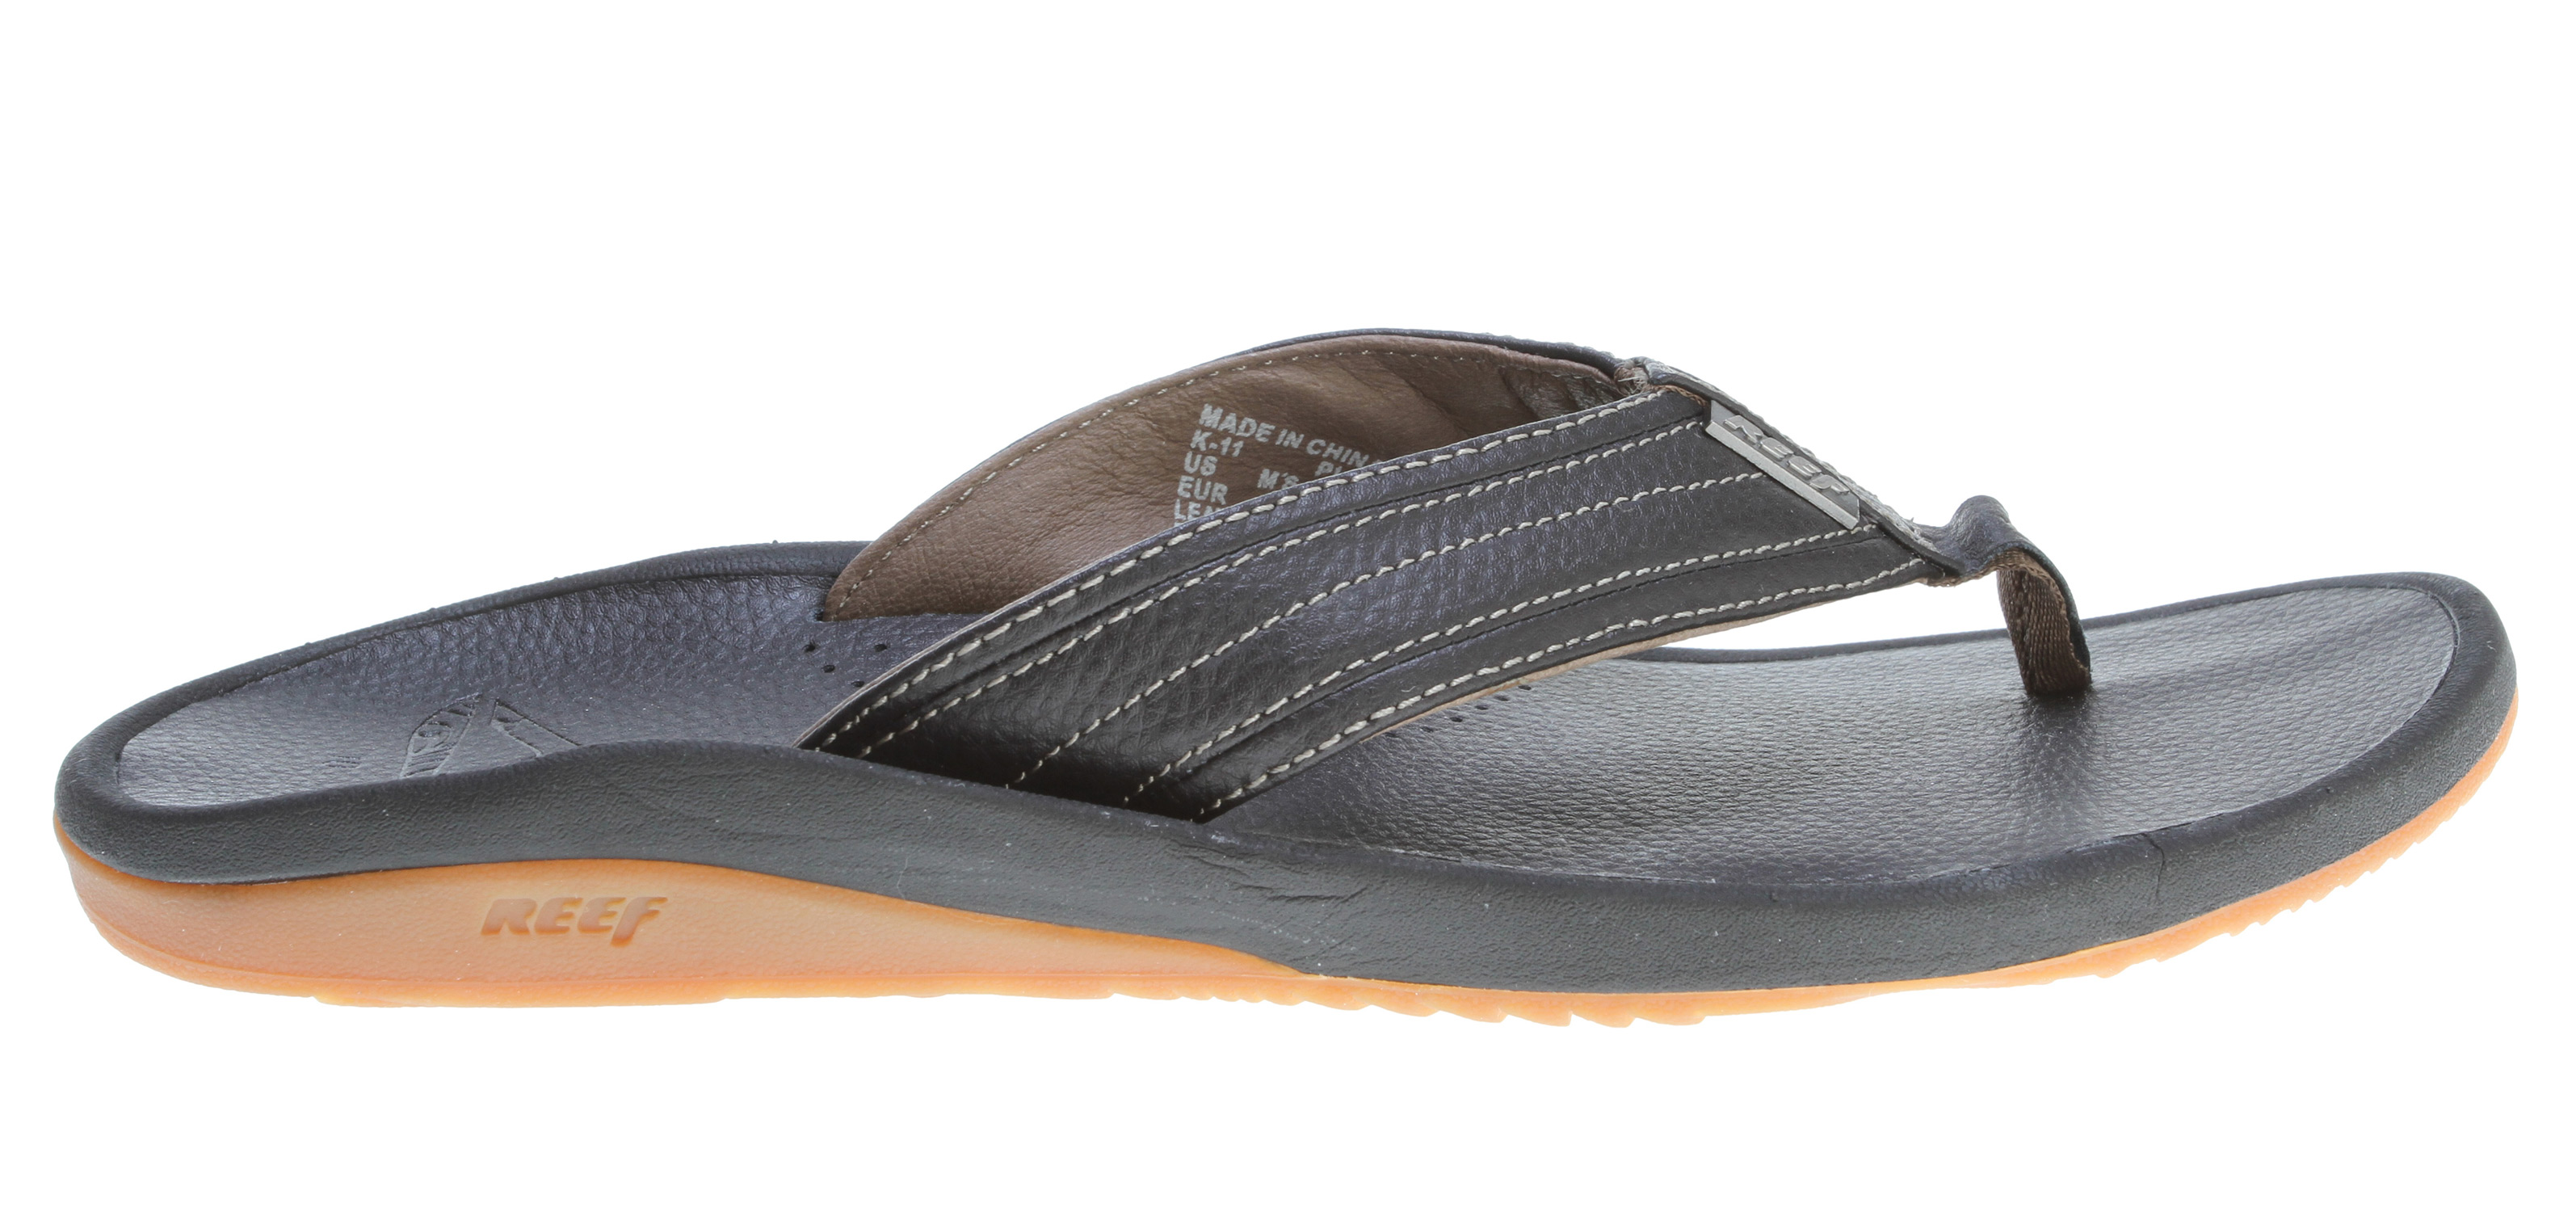 Surf Key Features of the Reef Playa Avellanas Sandals: Full grain leather upper and footbed asymmetrical upper design provides style and support with super soft glove-like pig skin lining Reef metal logos Deep contoured 51% recycled eva midsole Reef supreme design outsole made of 25% recycled rubber - $48.95